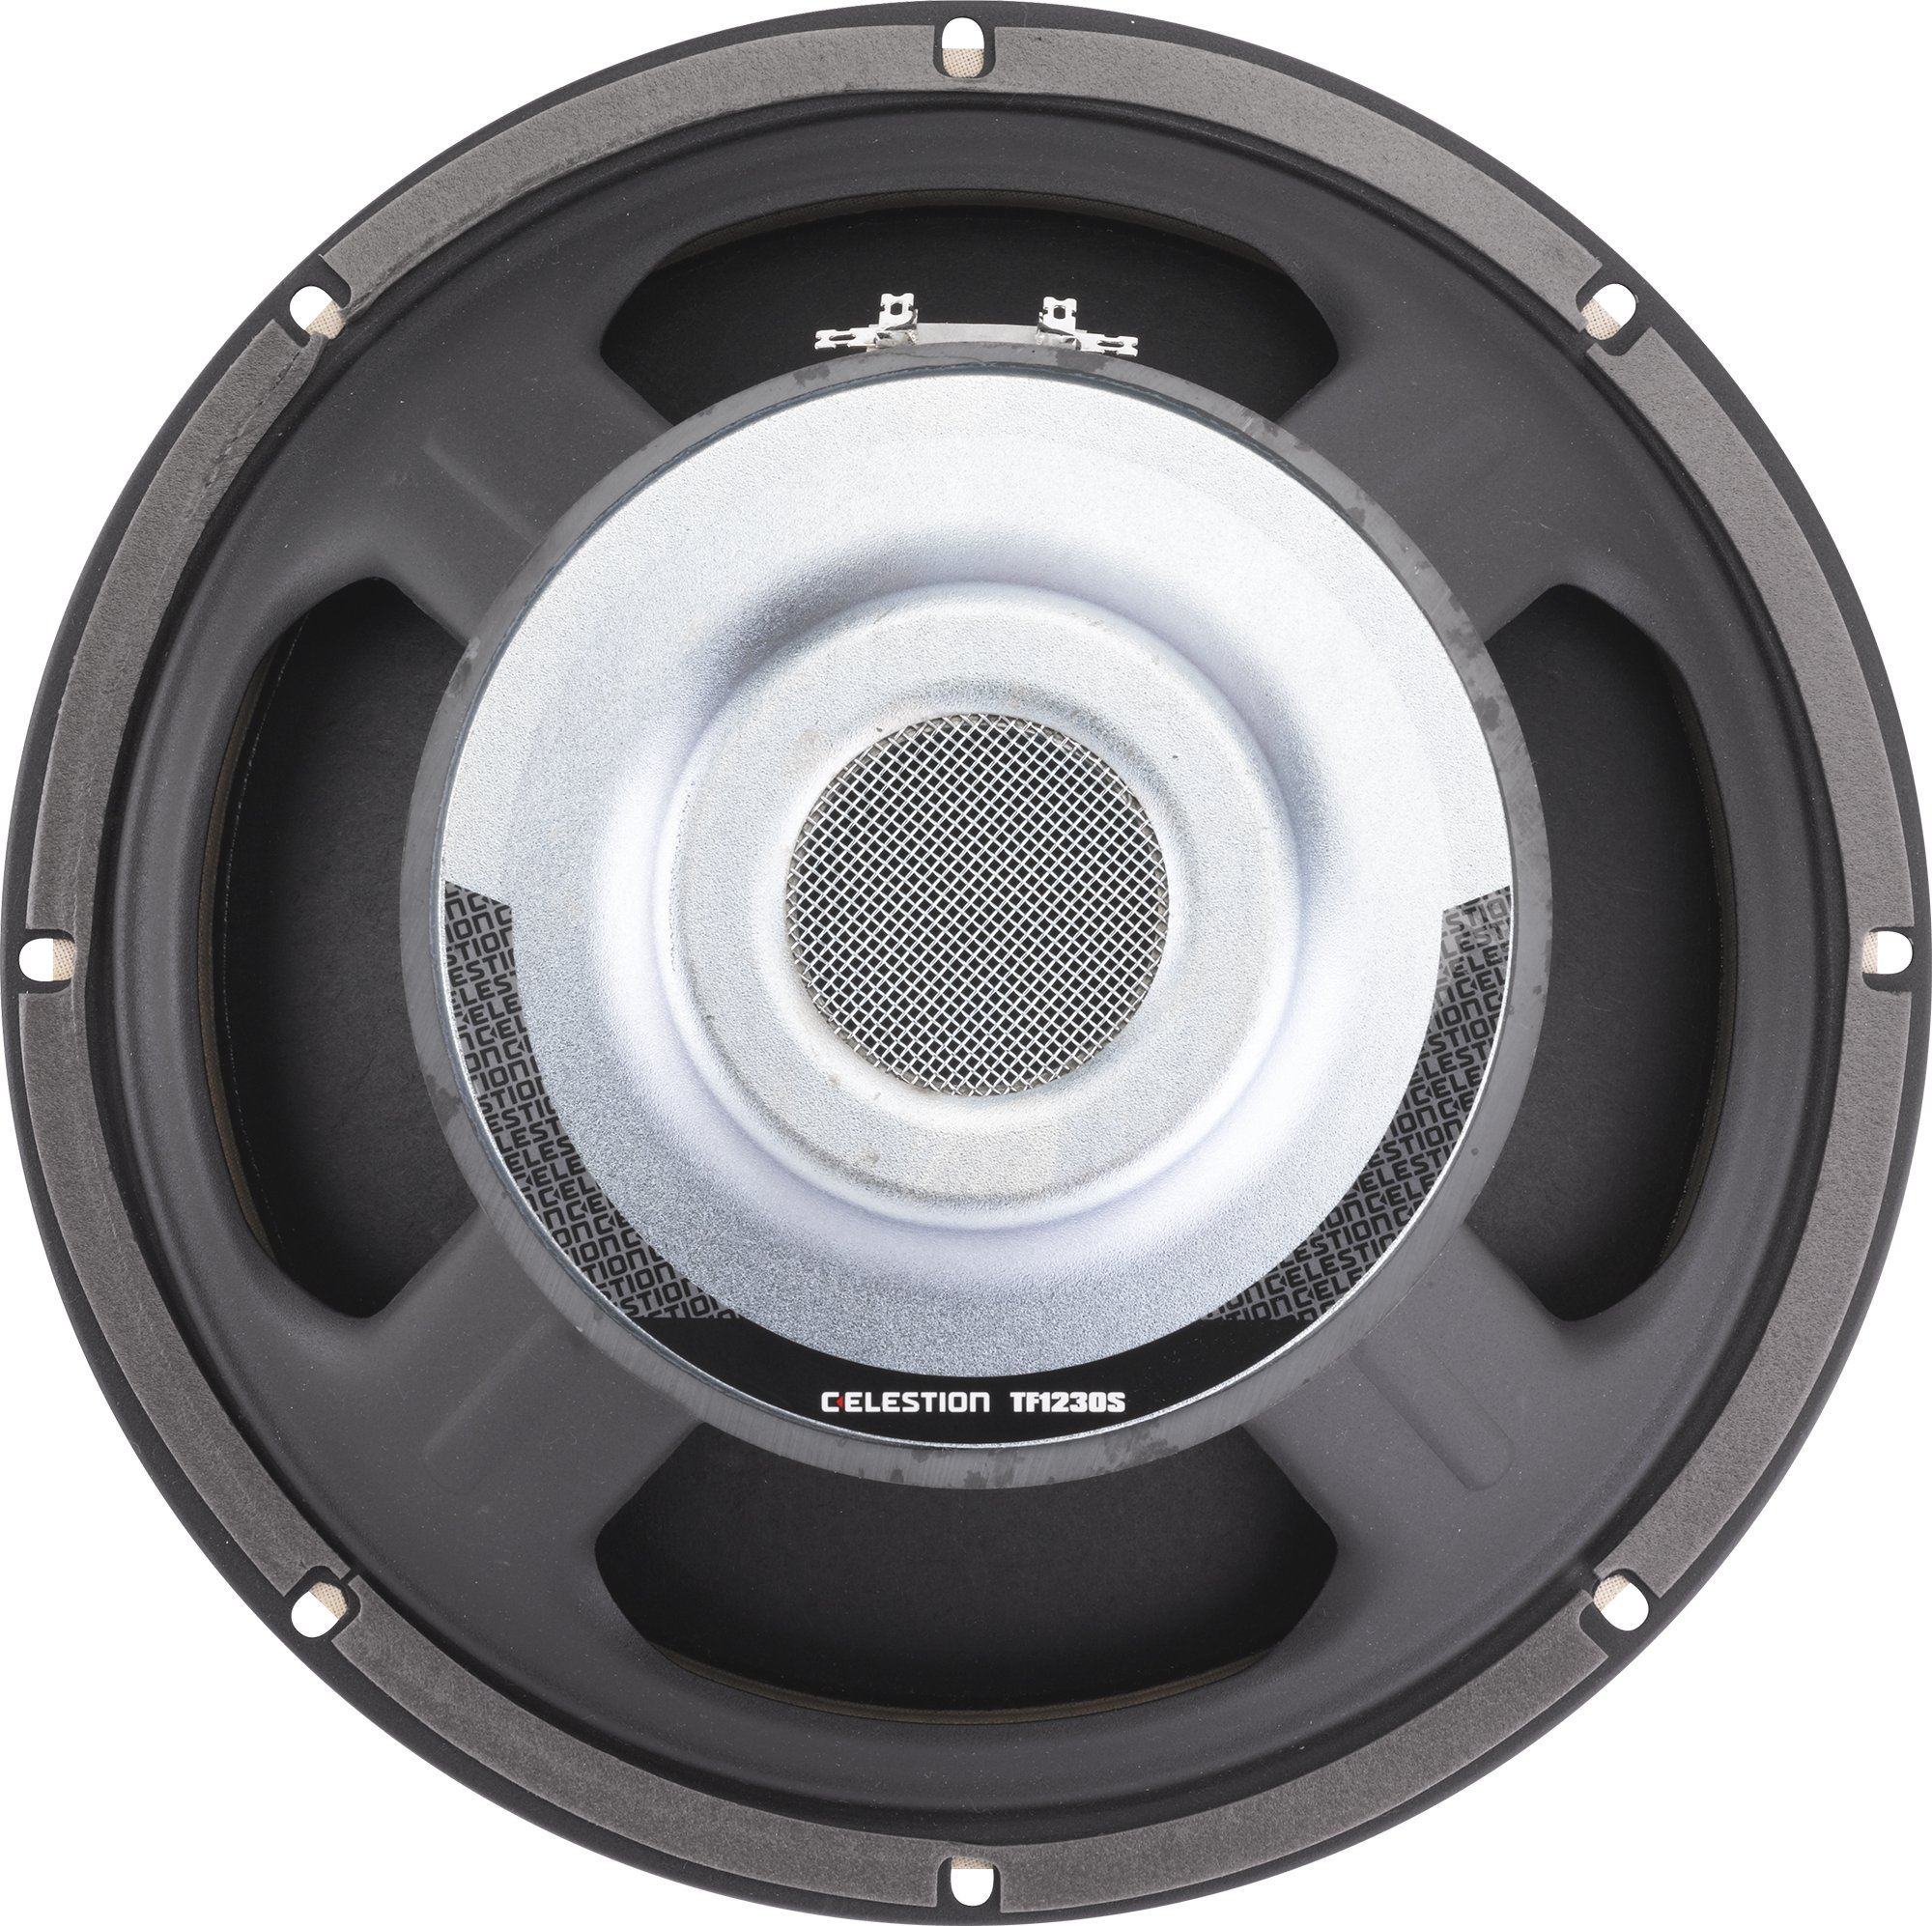 CELESTION TF1230S, Best Performing 12 inch Replacement woofer for Mackie SRM450 Mk2/3